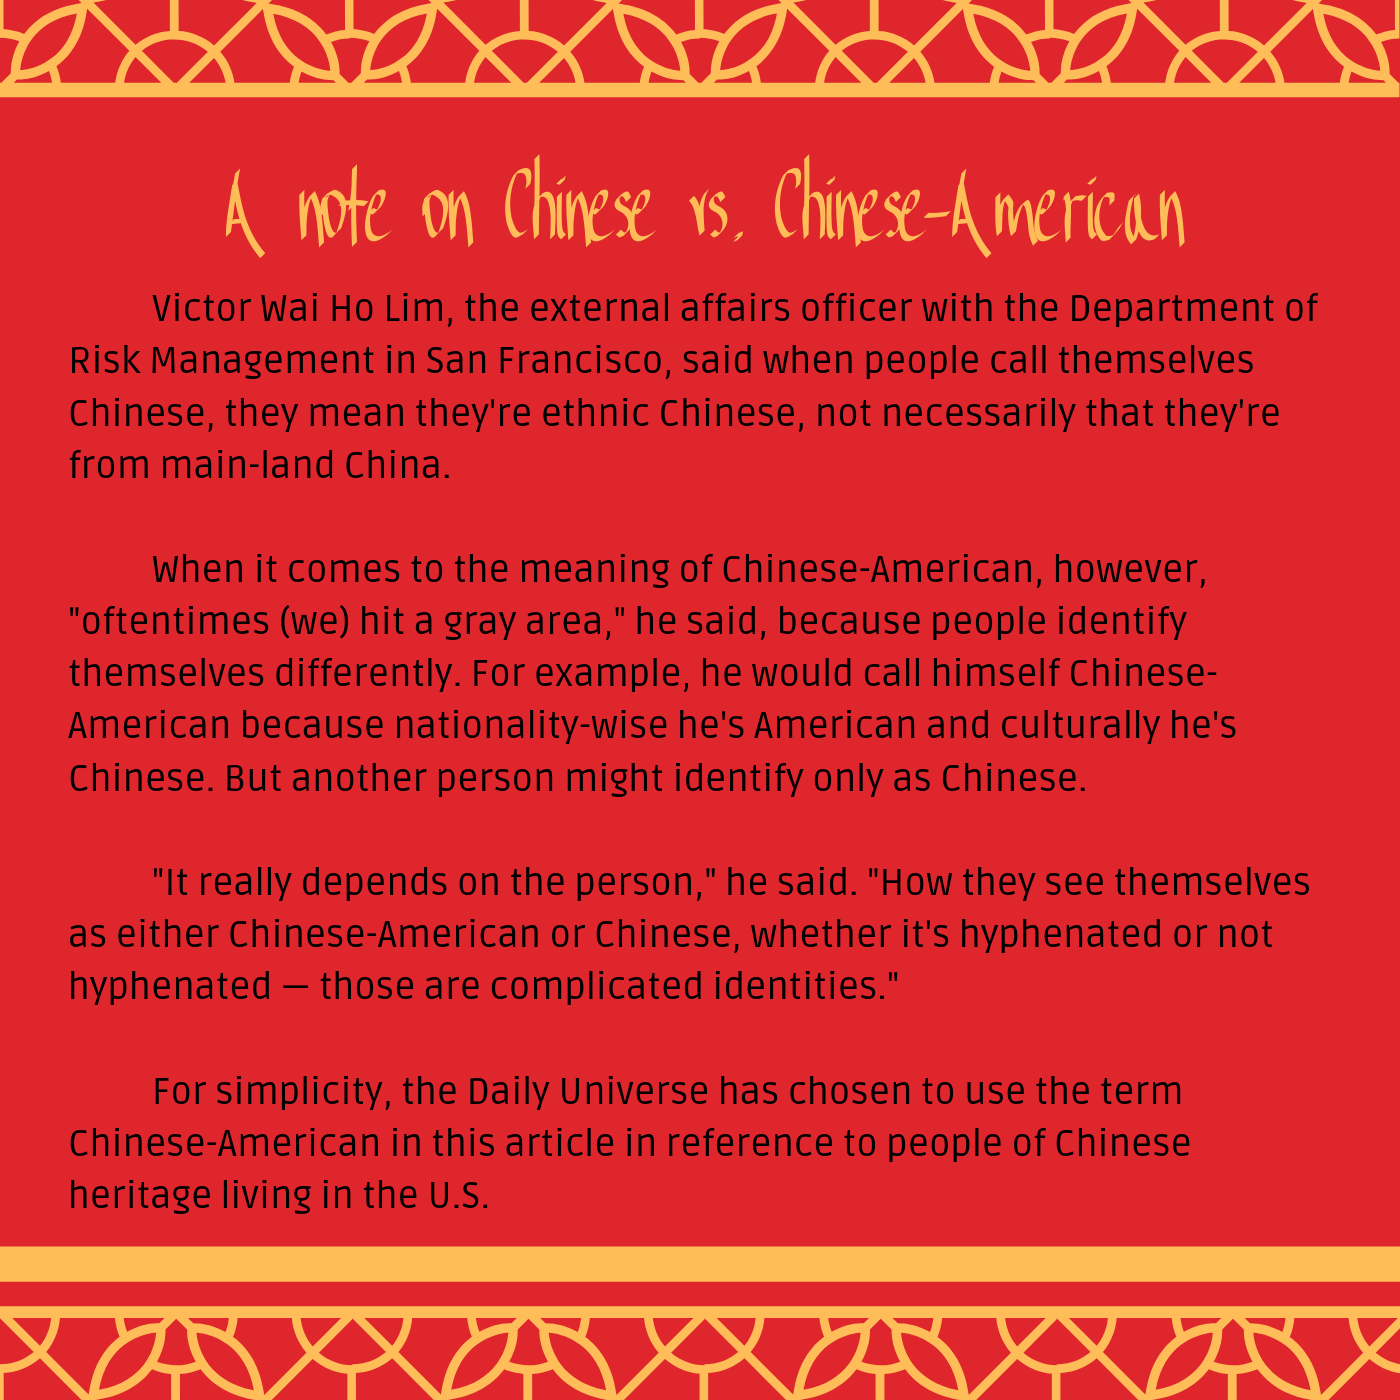 A-note-on-Chinese-vs.-Chinese-American-7